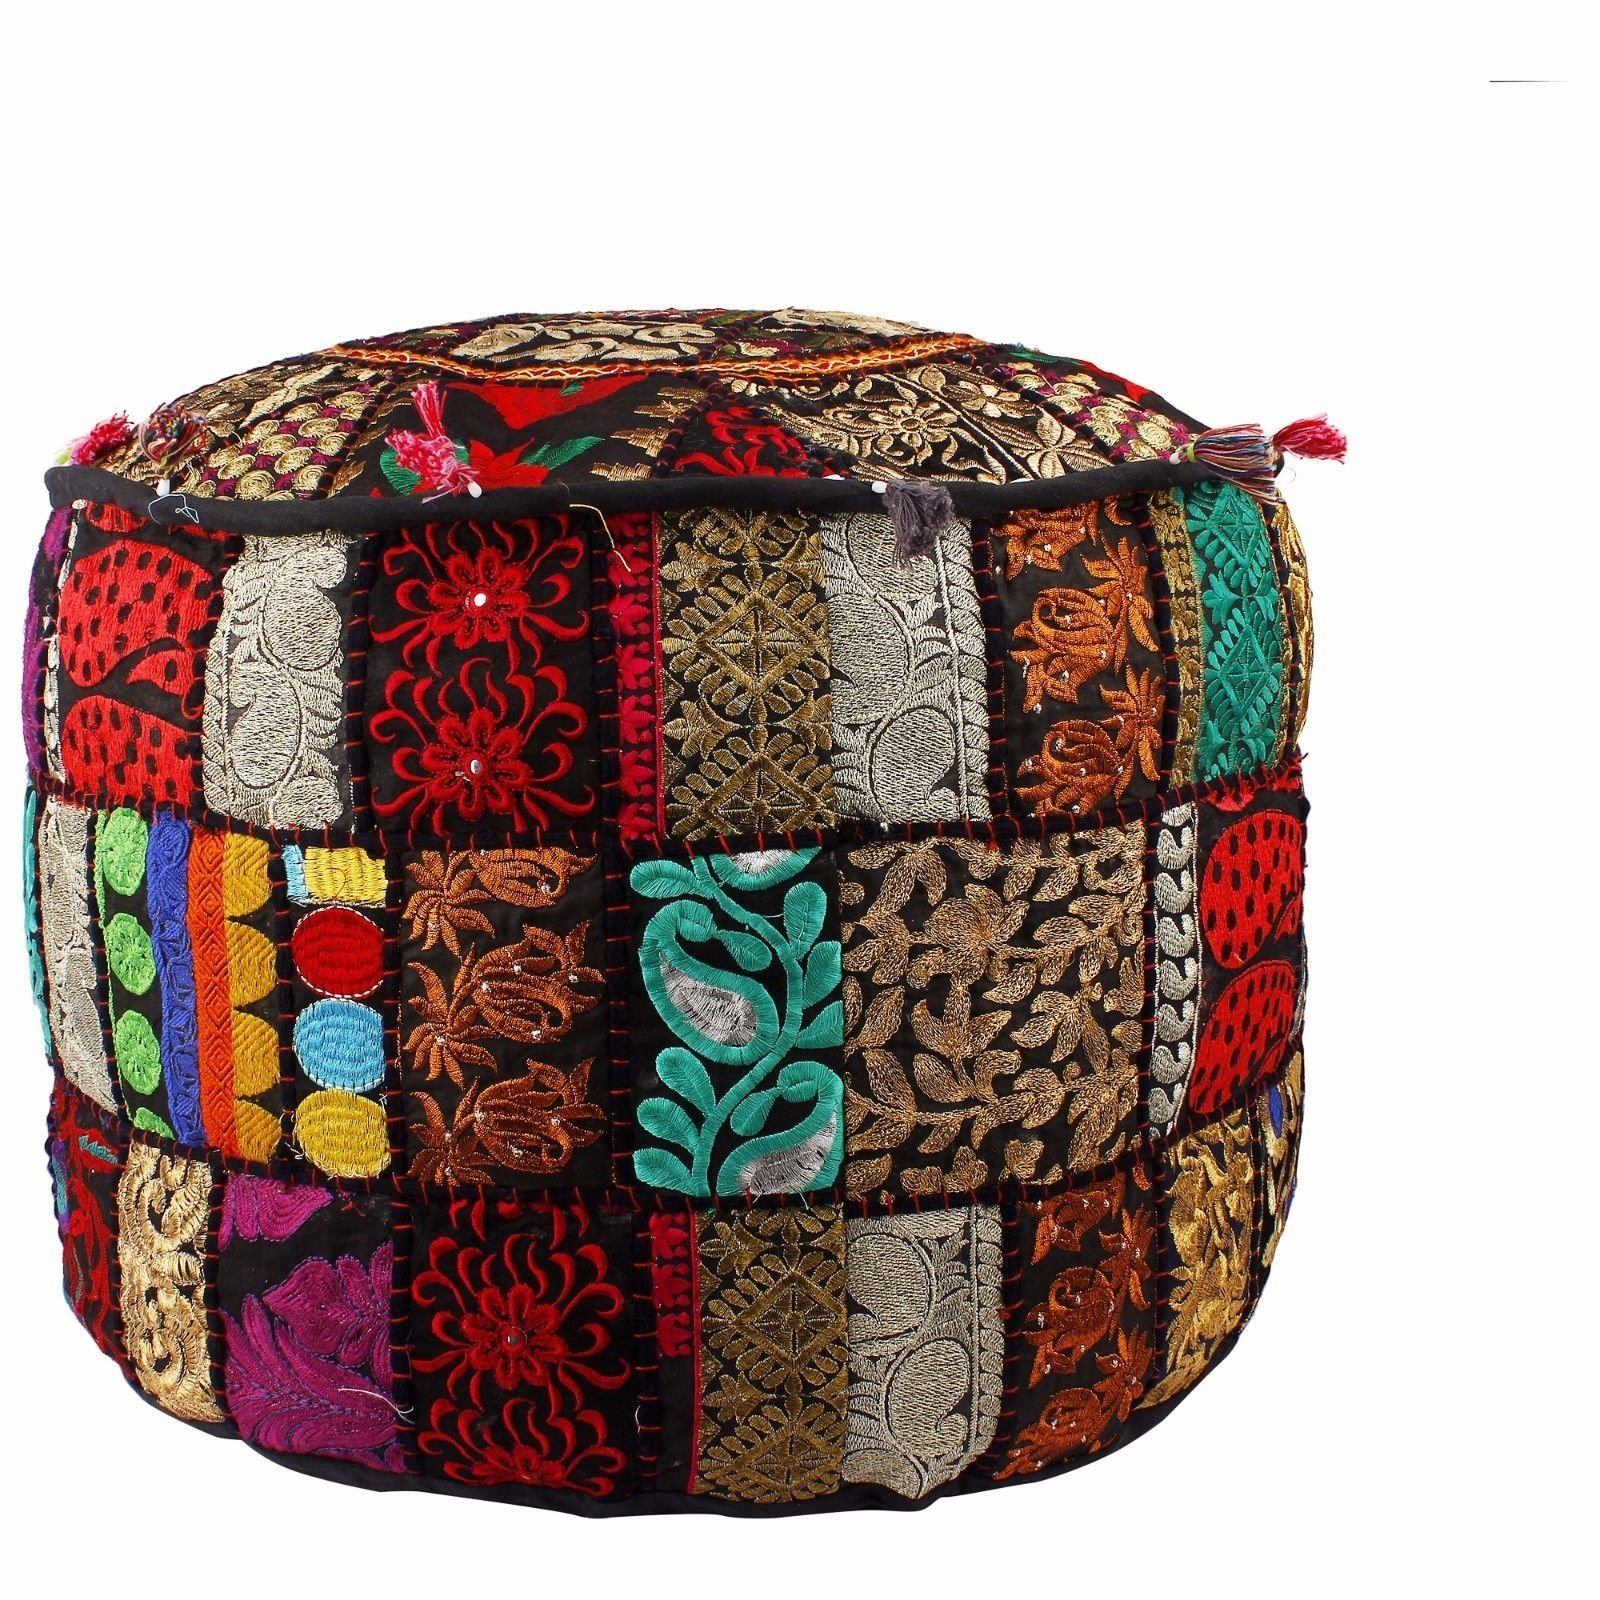 GANESHAM Indian Living Room Decor Vintage Embellished With Patchwork Hand Embroidered Handmade Floor Pouf Ottoman Boho Chic Bohemian Ethnic Traditional Round Footstool Bean Bag (22 inch dia.)